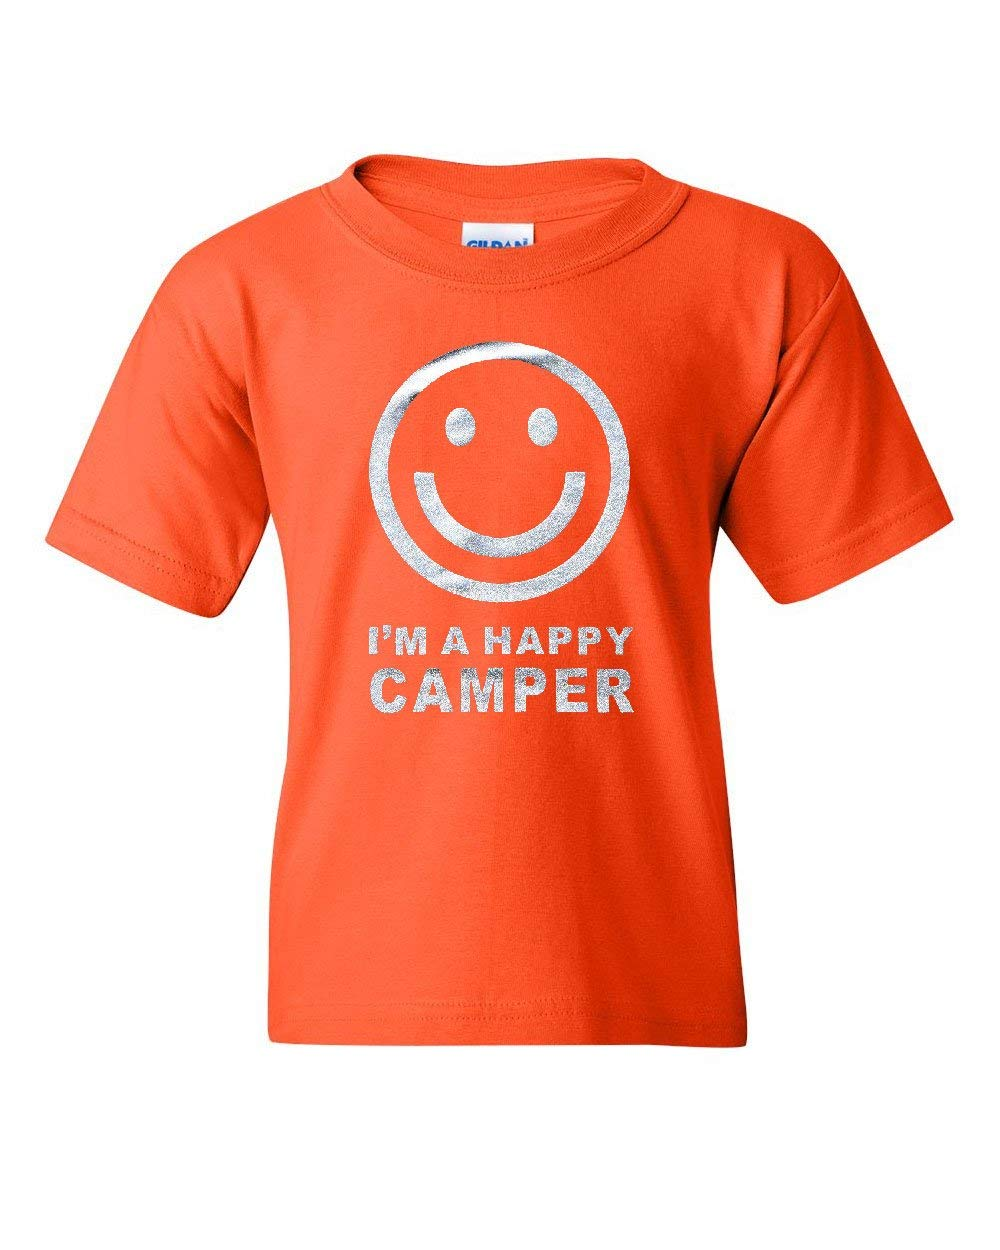 I'm a Happy Camper Smiley Face Youth T-Shirt Tourism Camping Travel Kids Tee Orange L